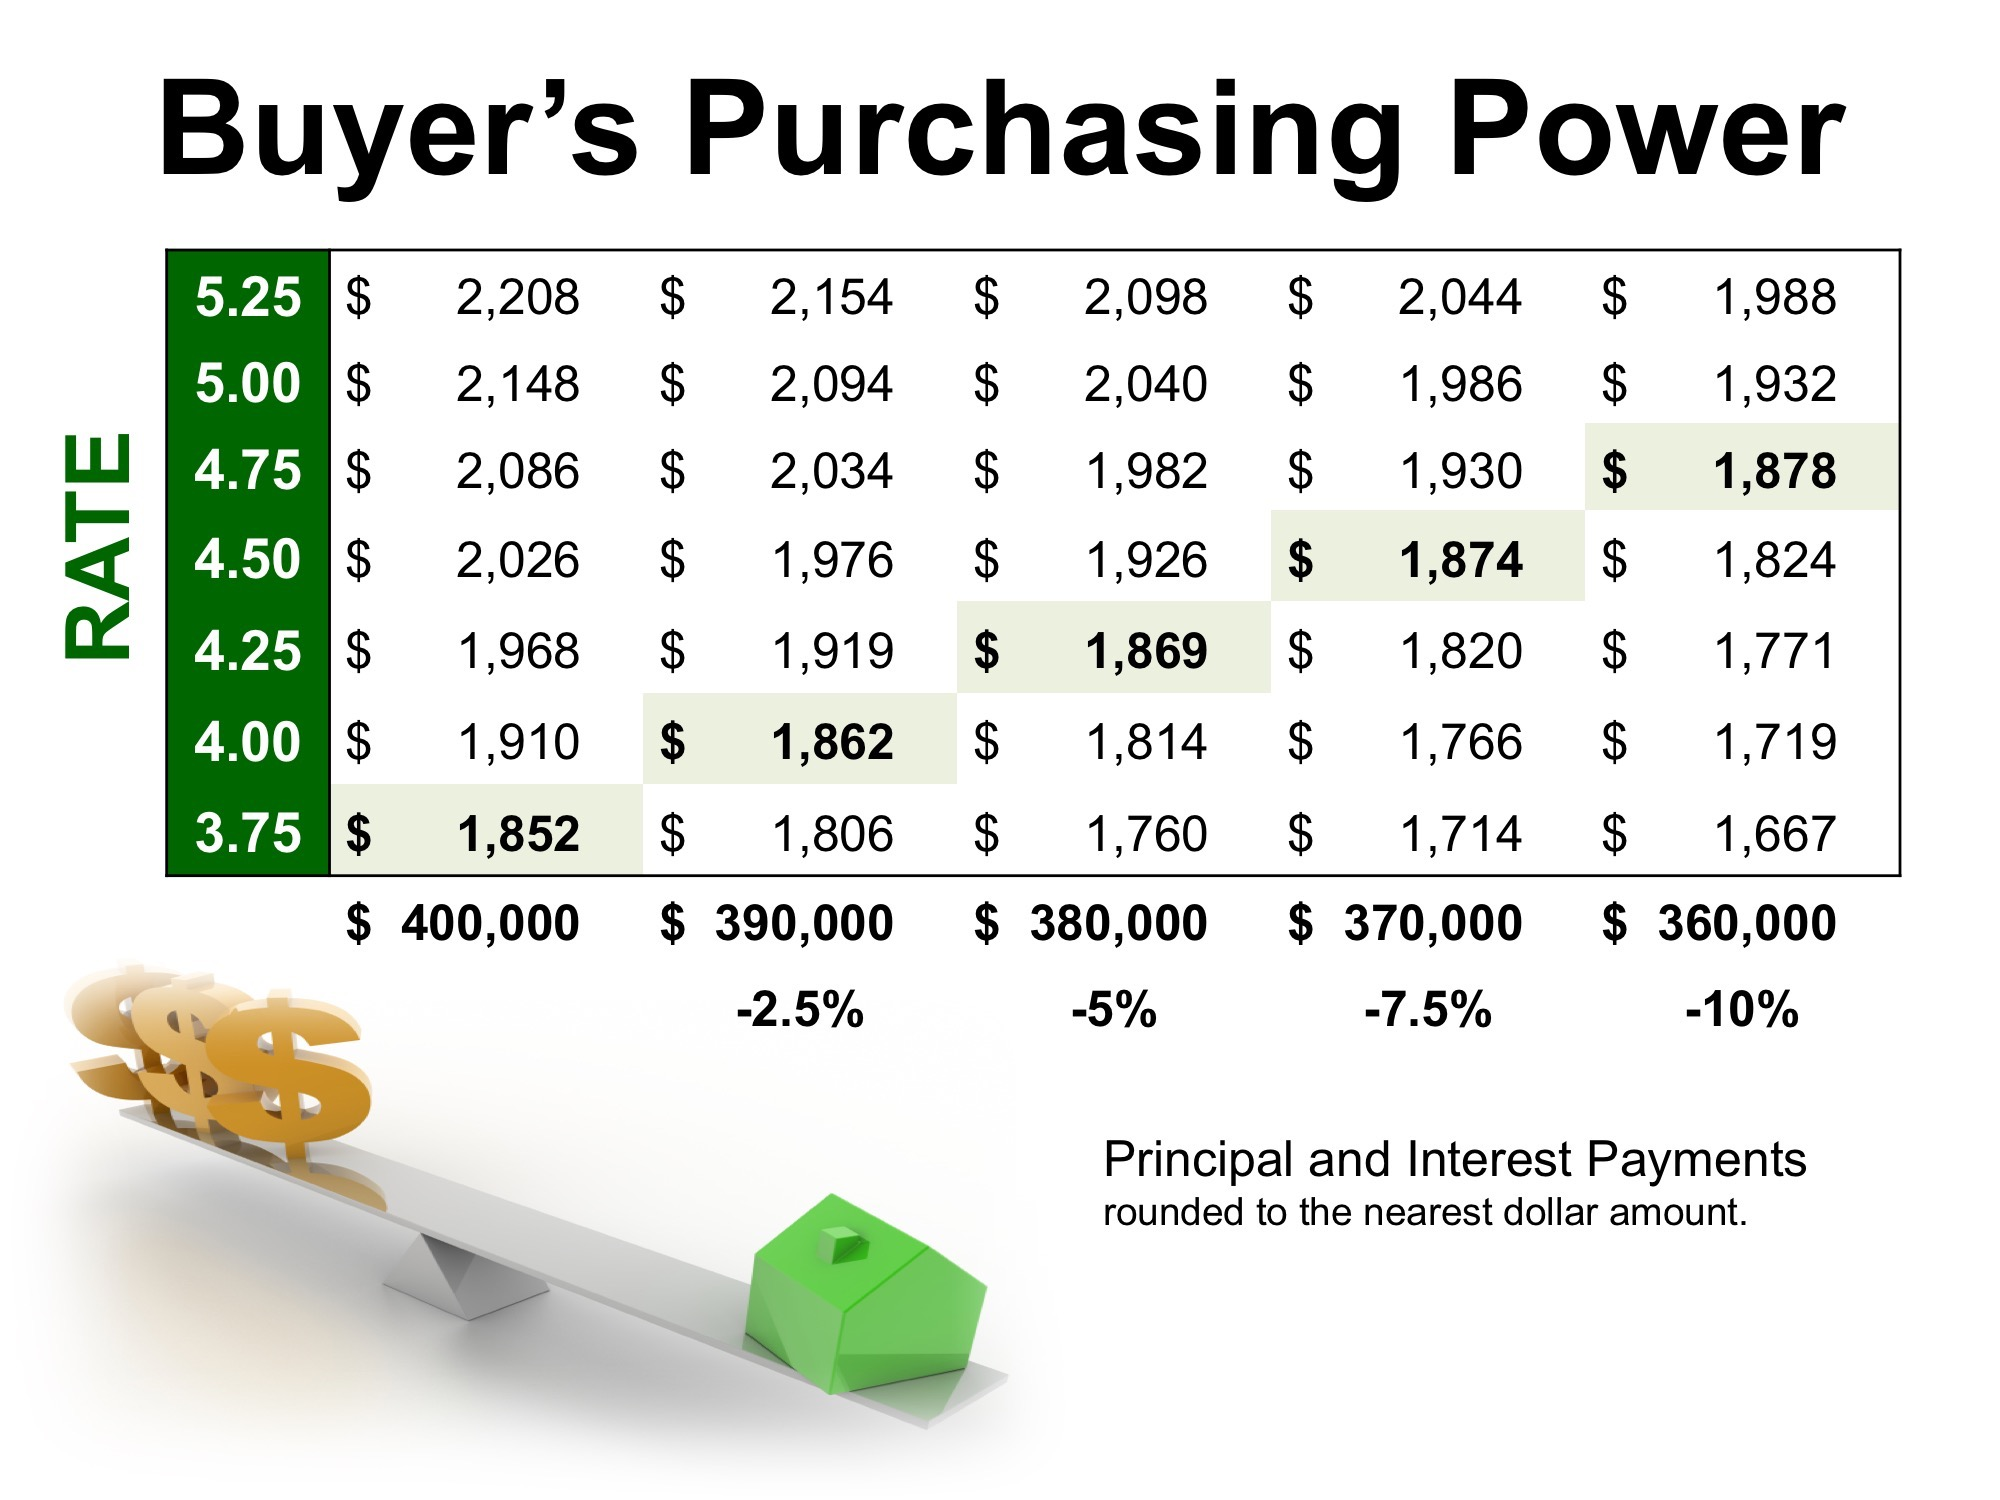 Low Interest Rates Have a High Impact on Your Purchasing Power | Simplifying The Market